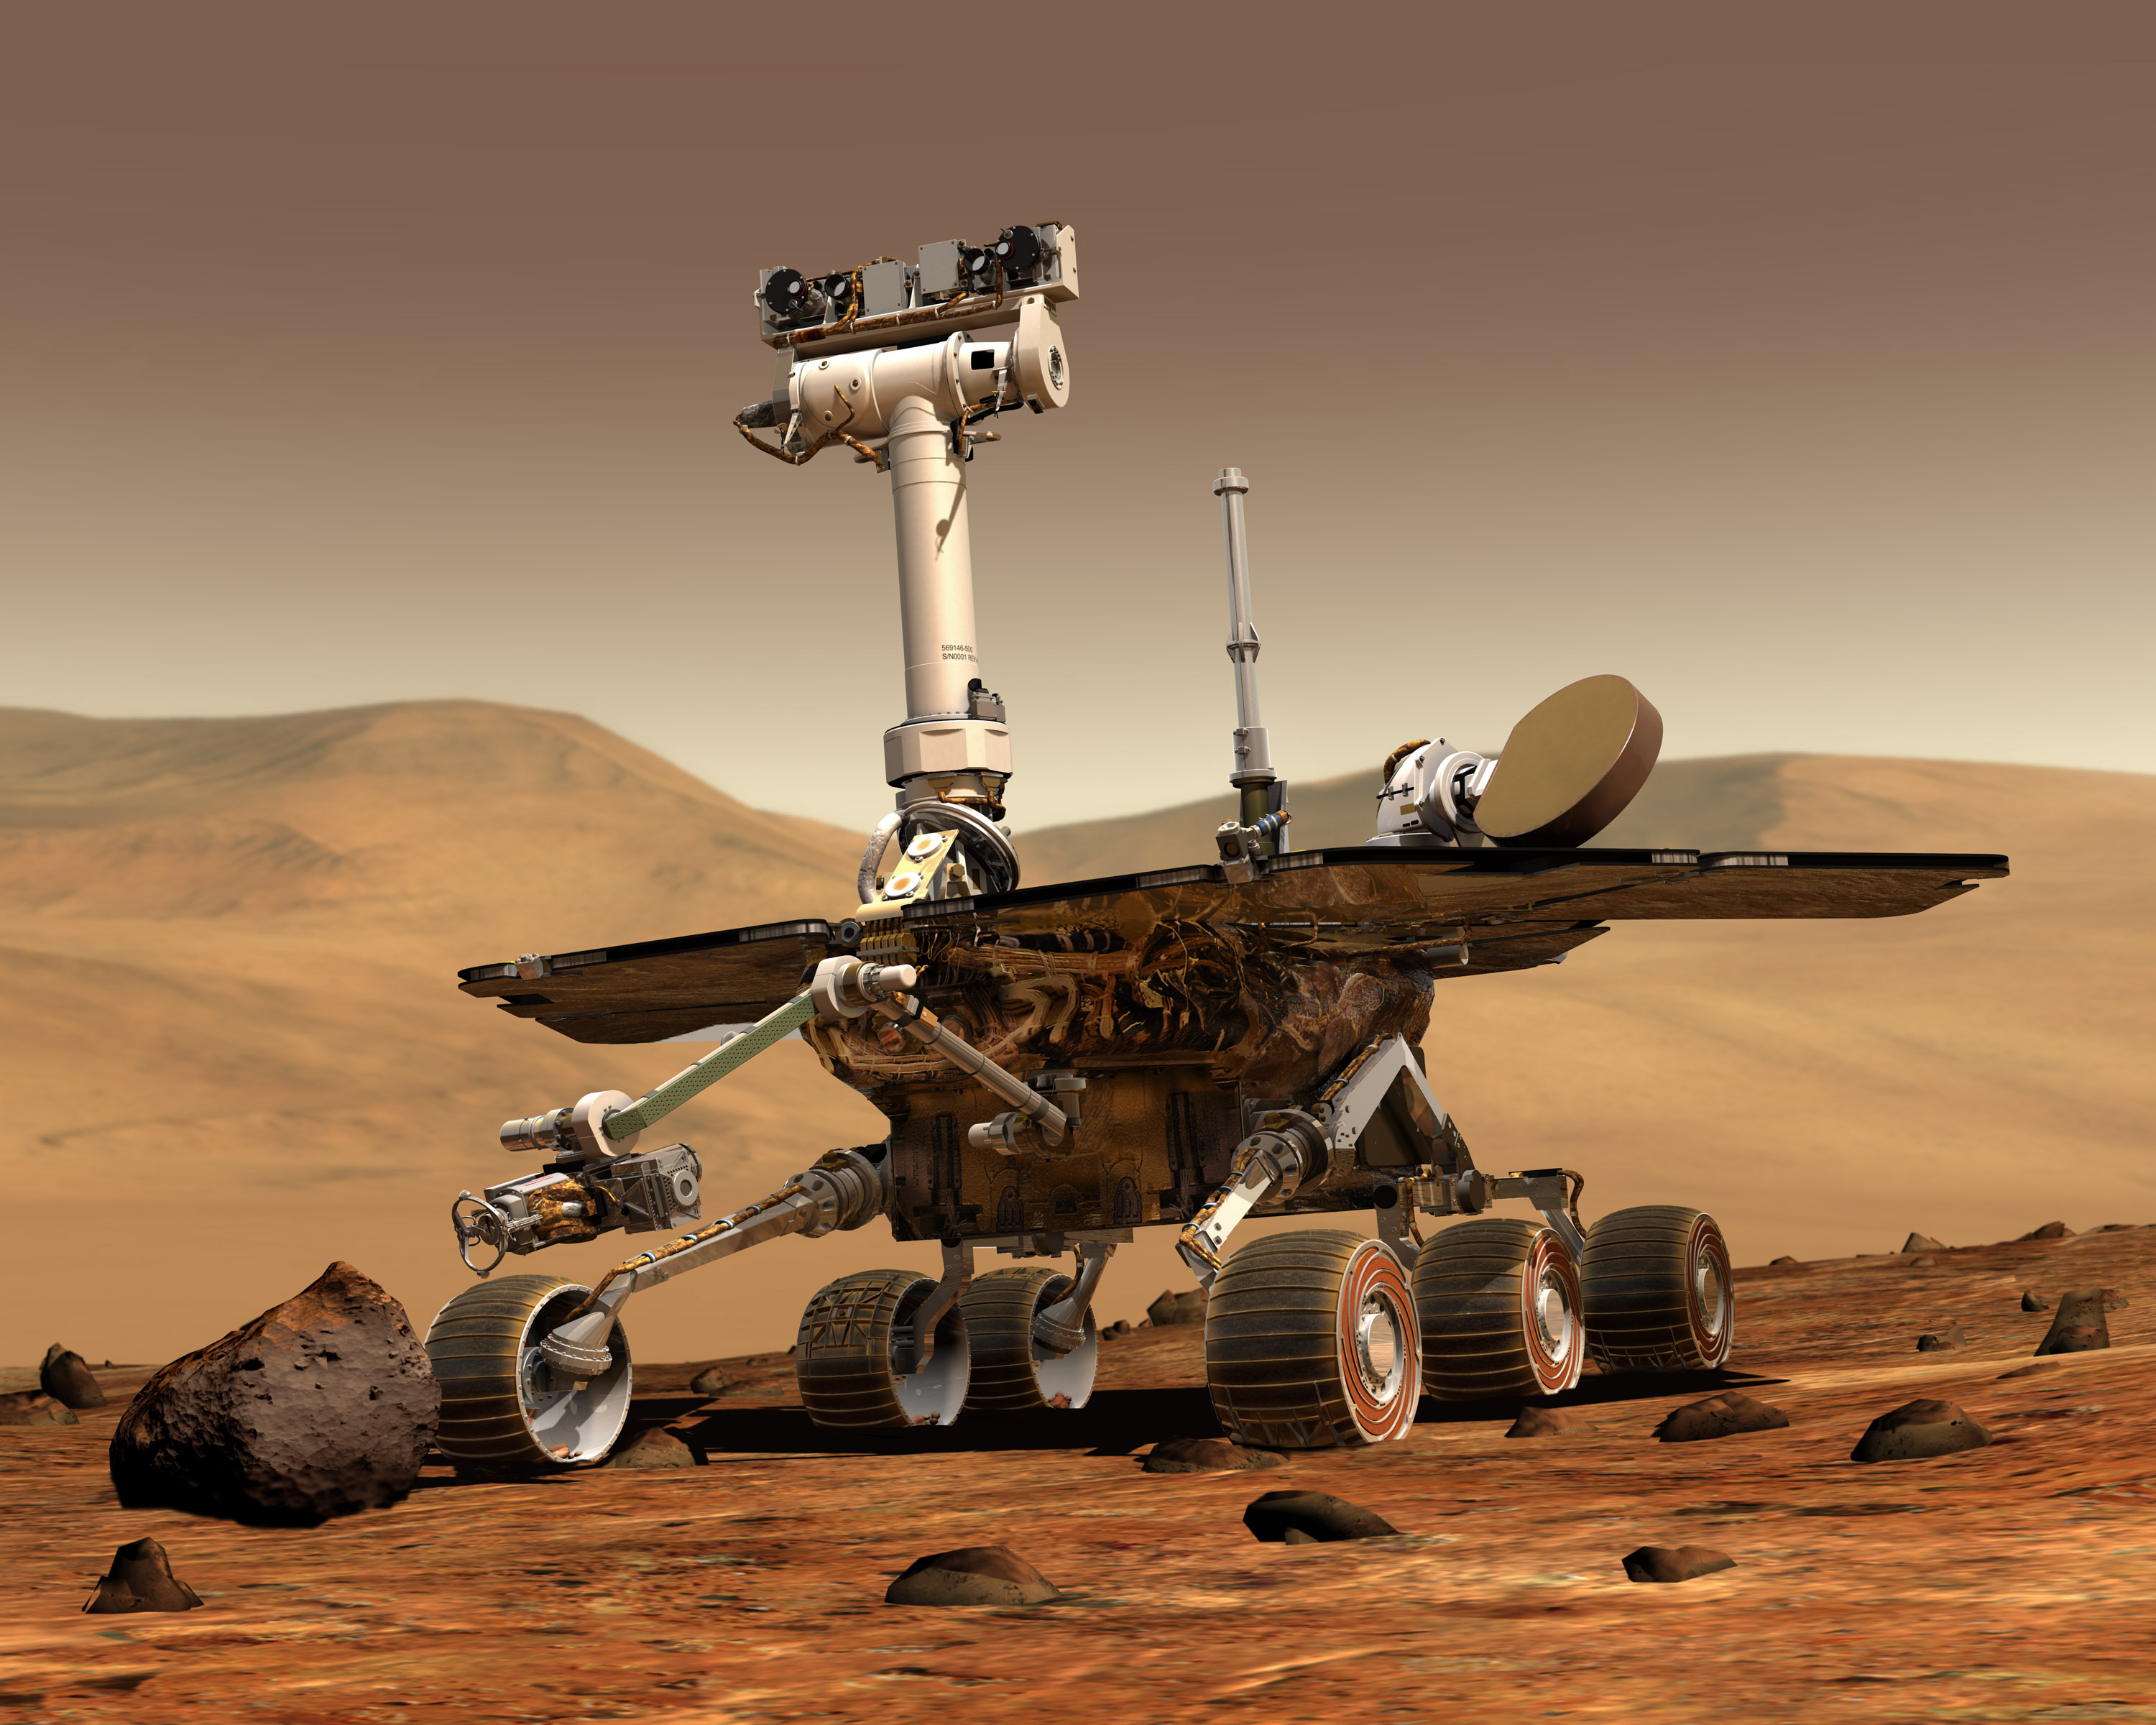 An artist's rendering of NASA's Opportunity Mars Rover